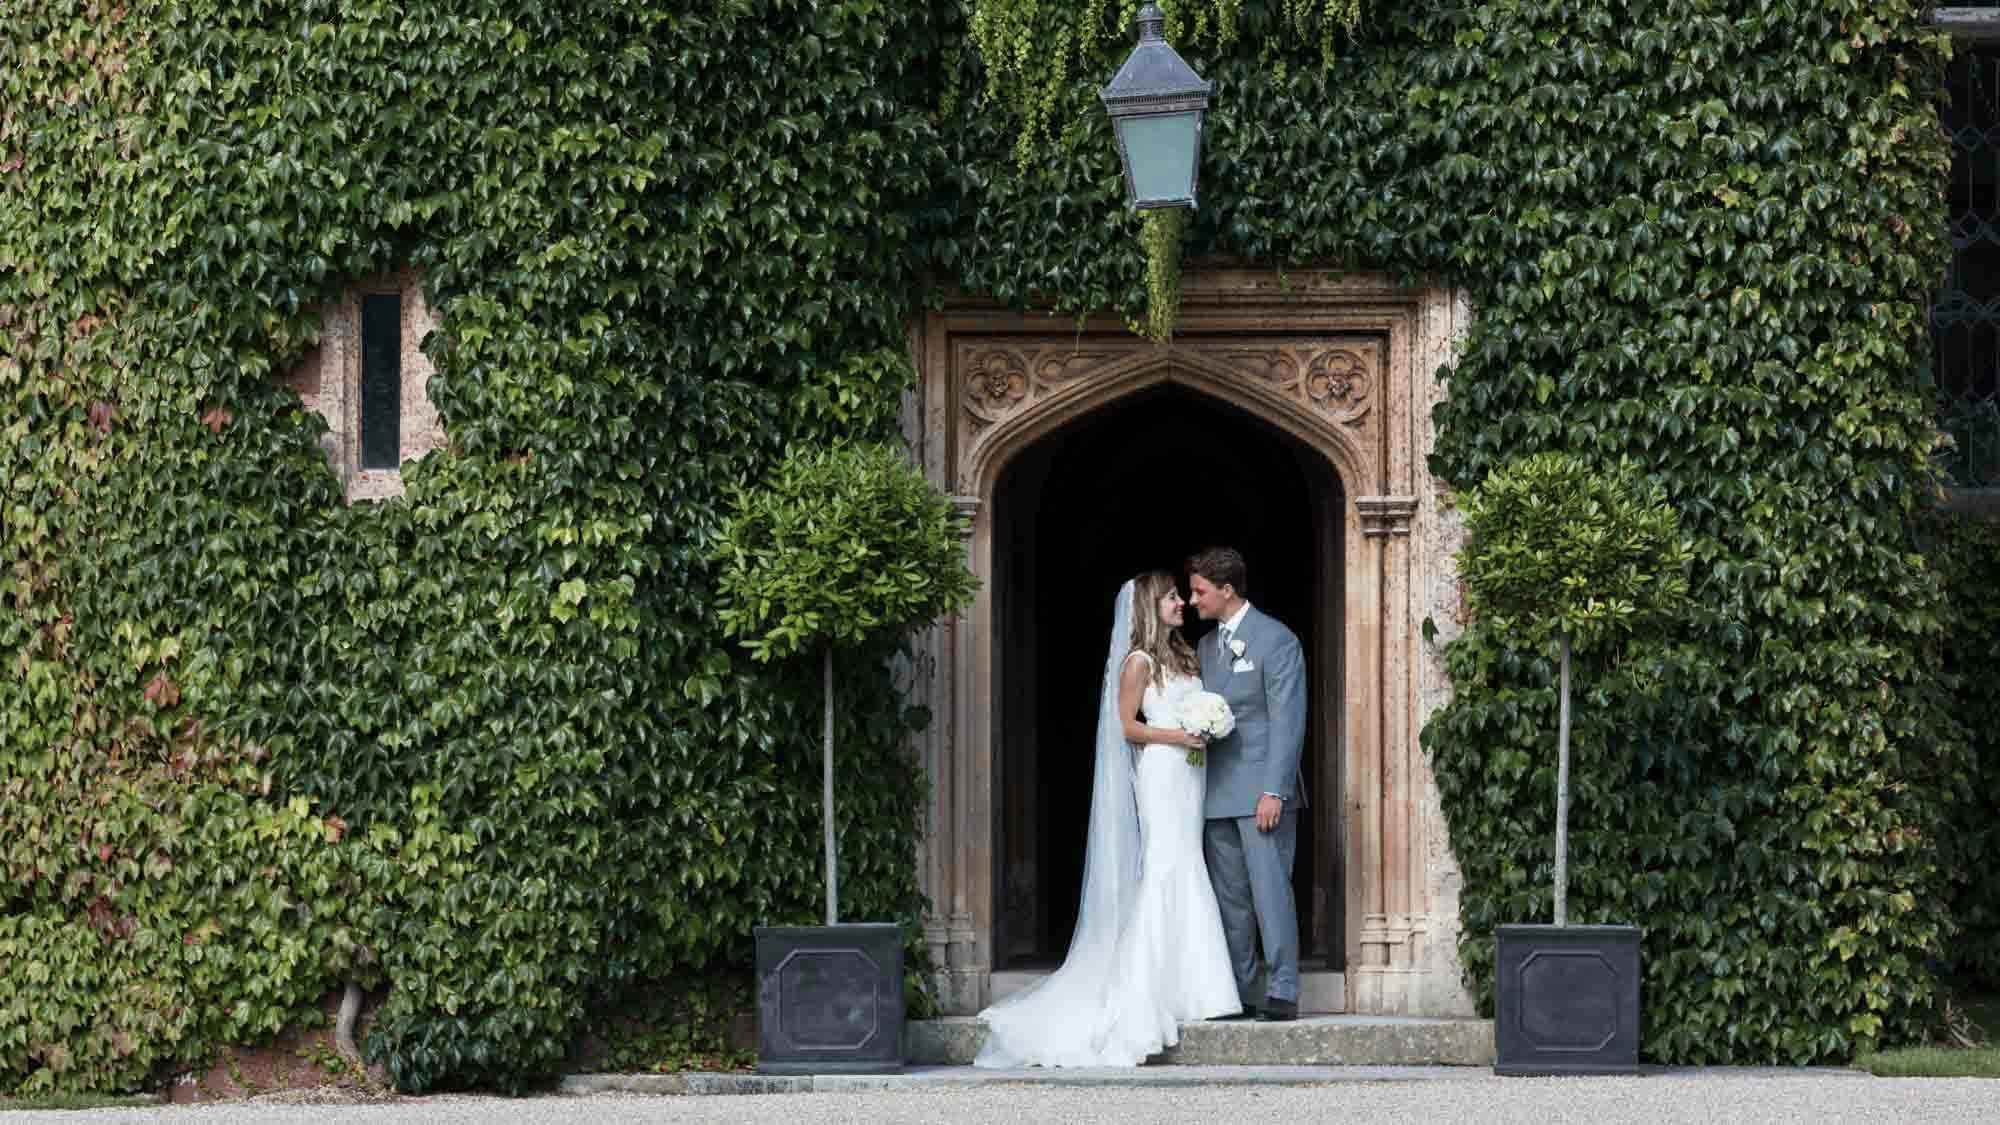 Kiss in the doorway at St Audries Park